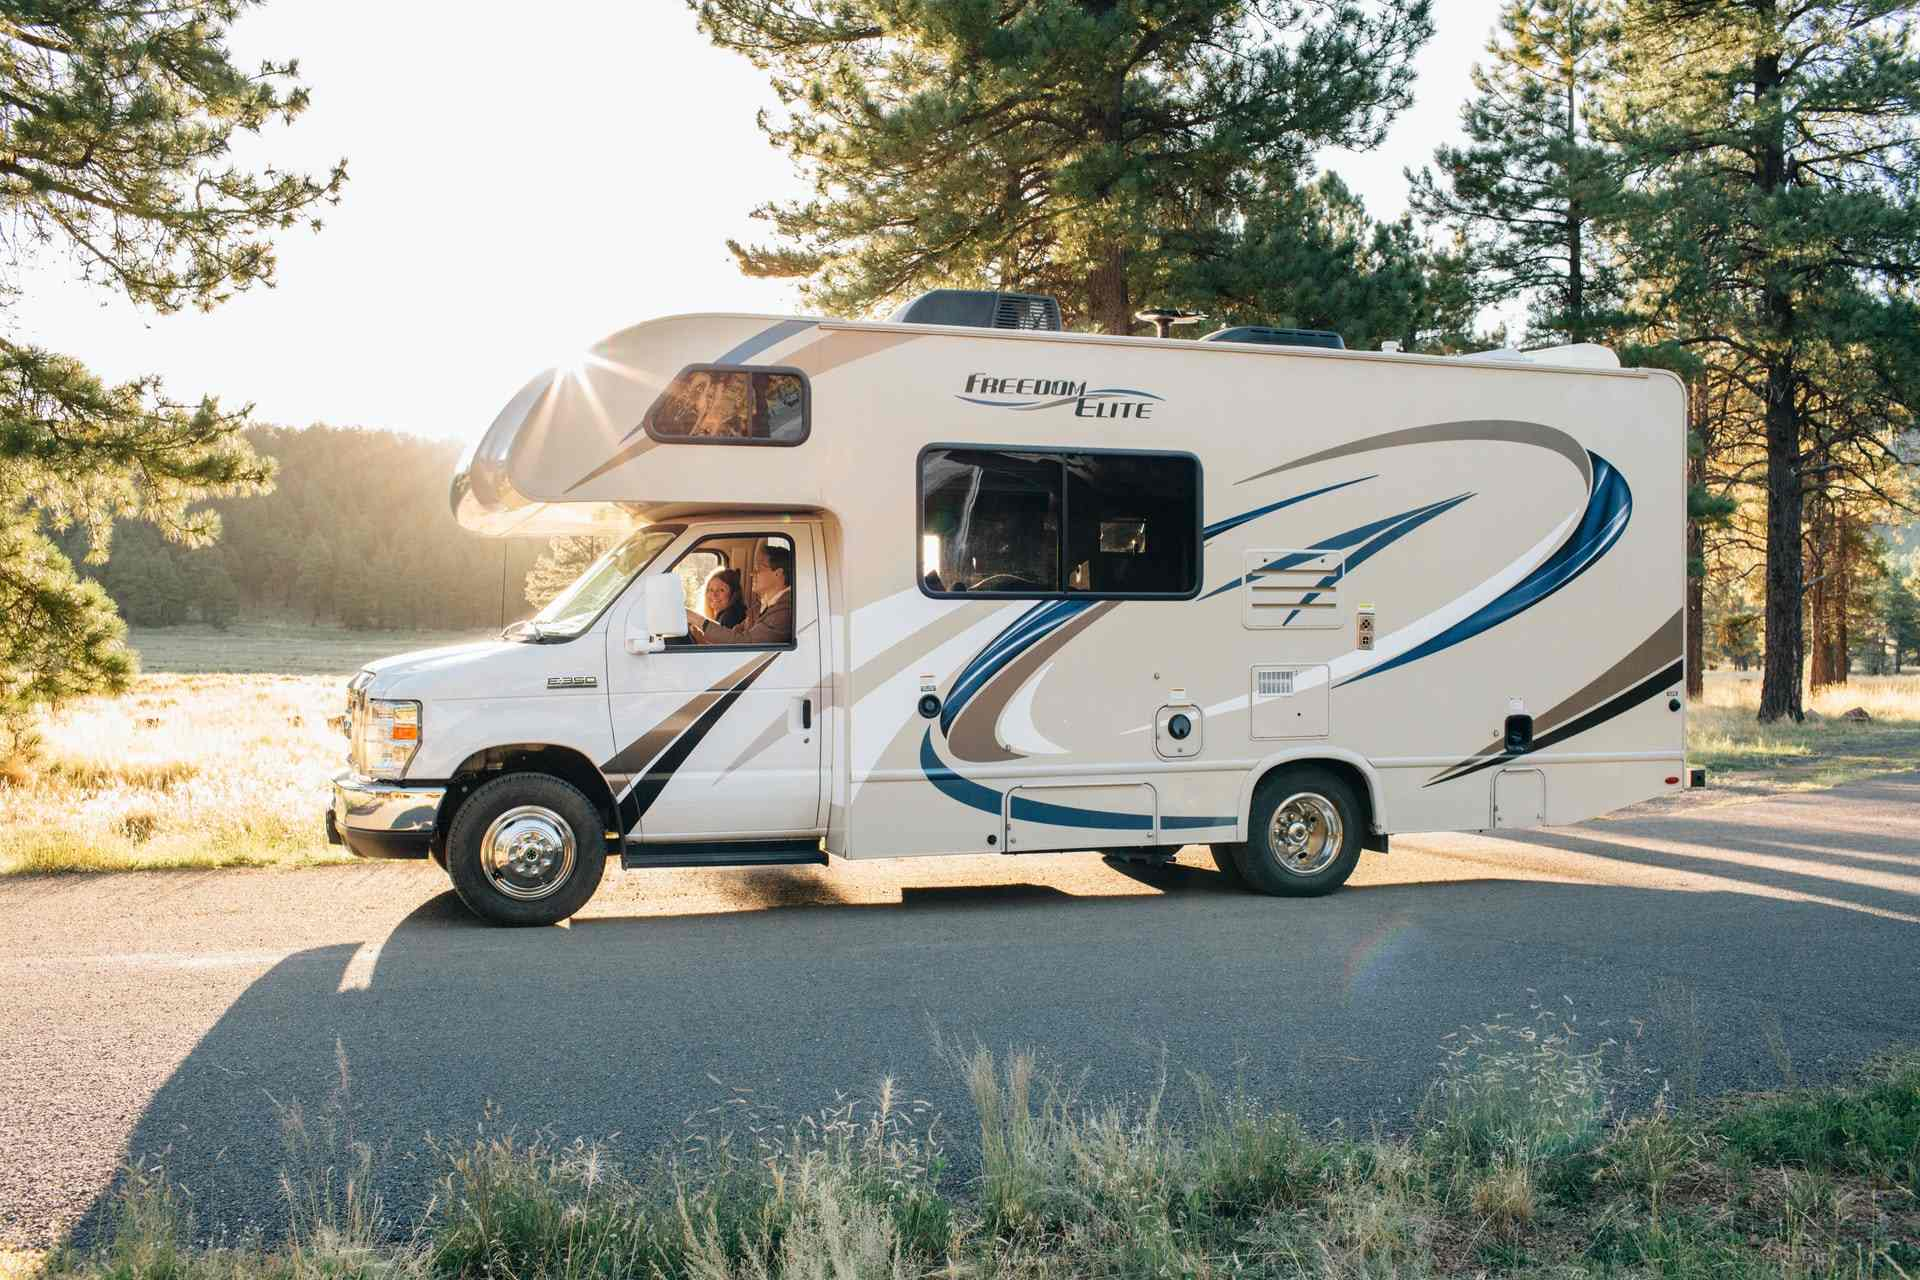 Kelowna RV Camping: 8 Best Campgrounds for Your Recreation